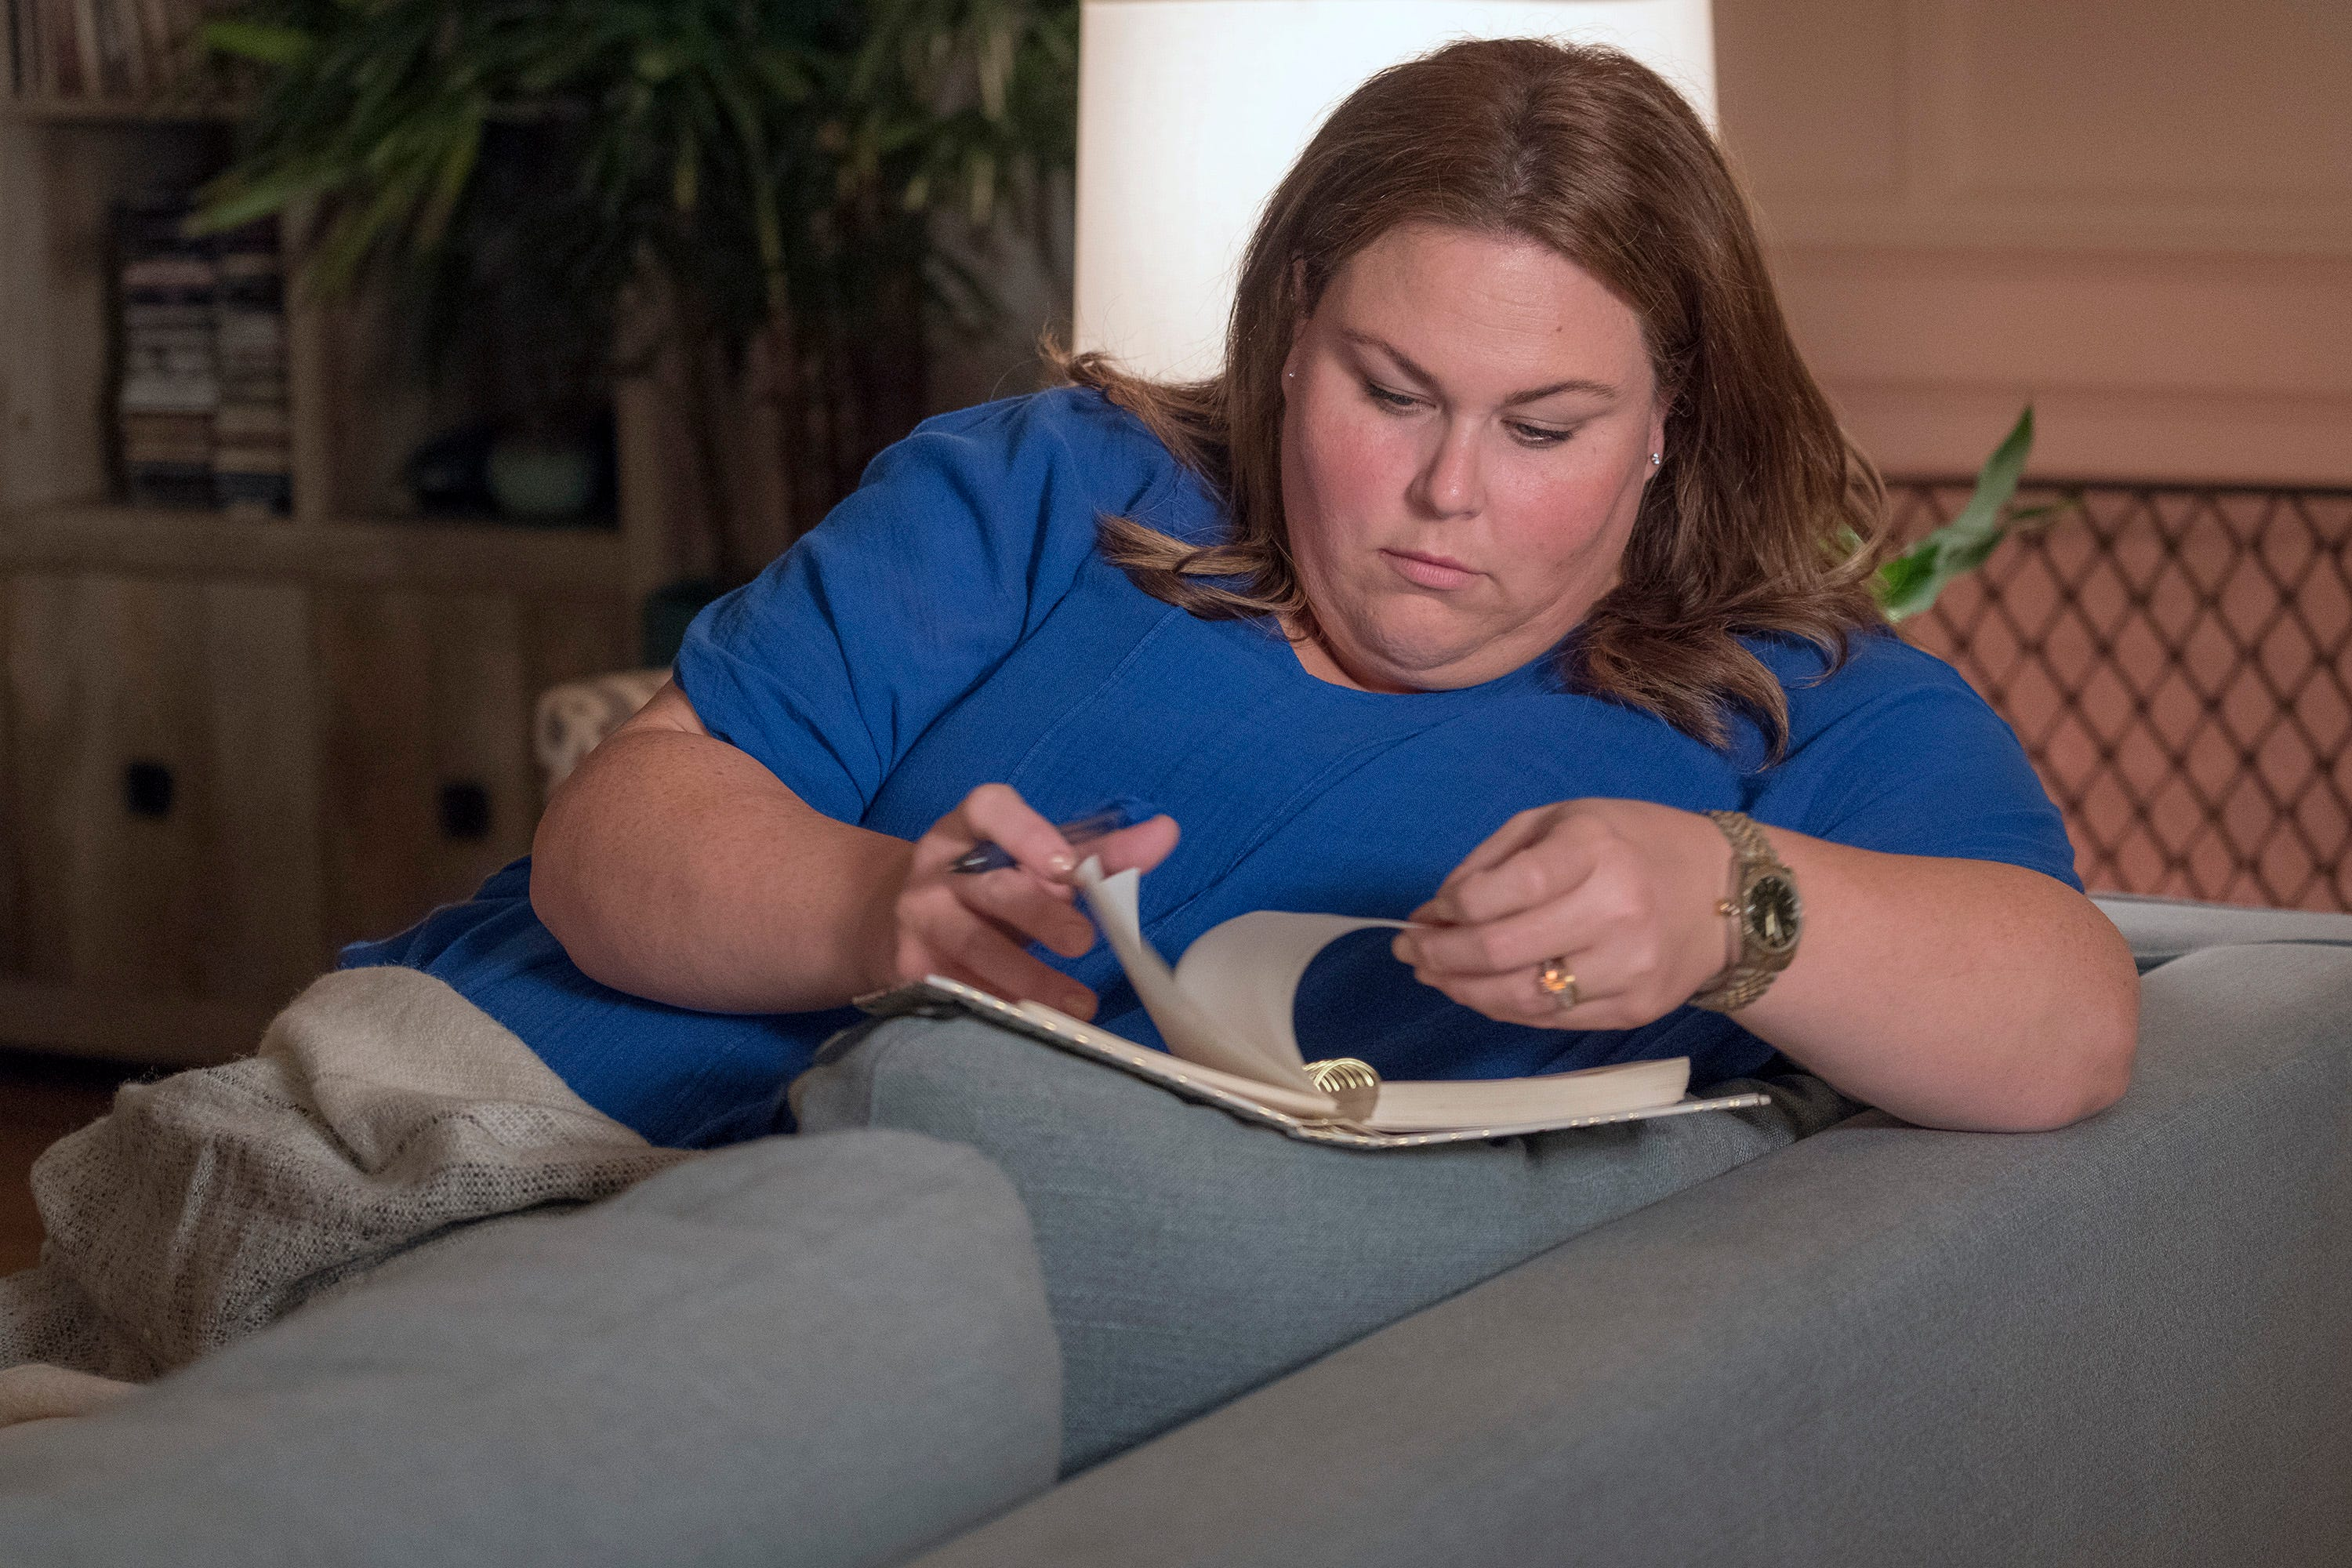 'This Is Us' recap: Love, war and IVF